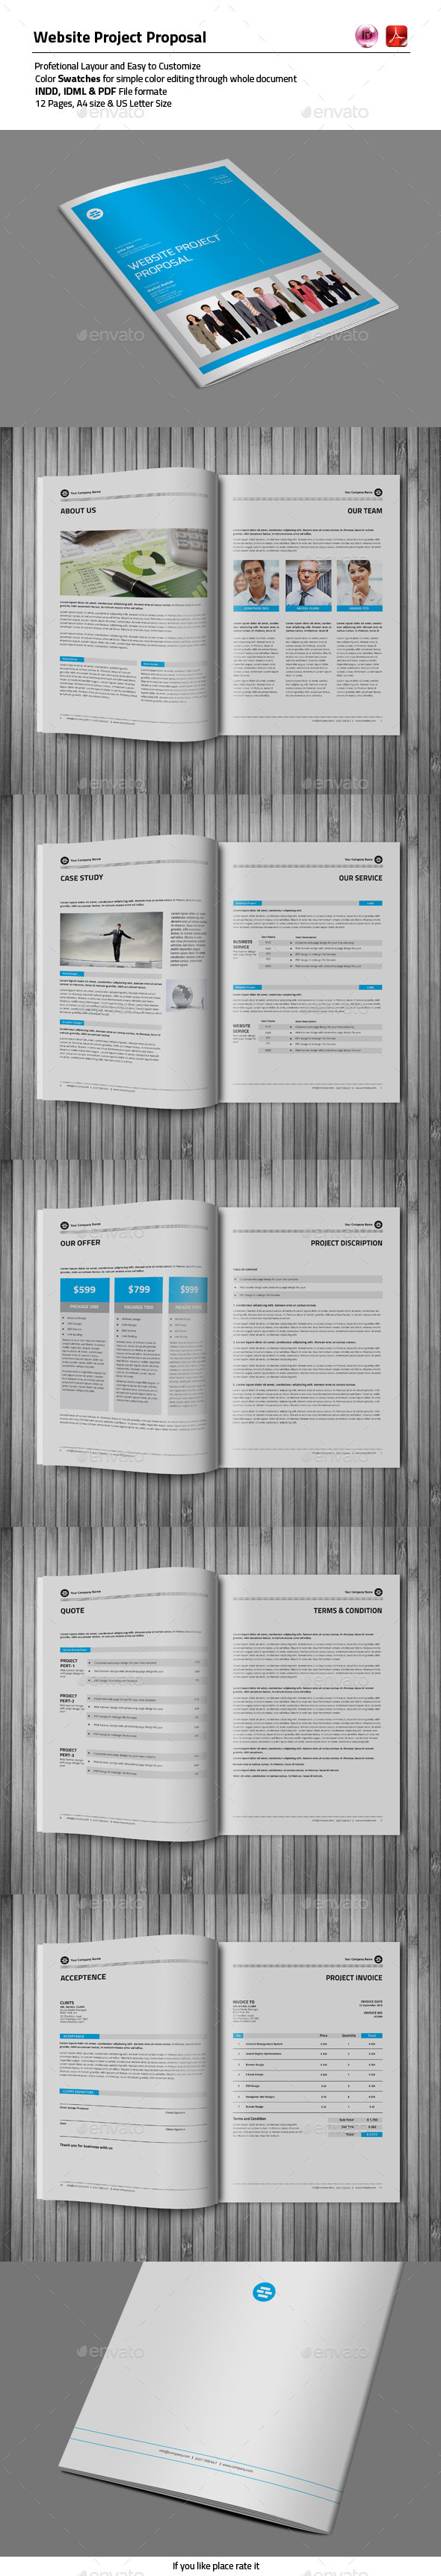 GraphicRiver 12 Pages Proposal Template 10200156